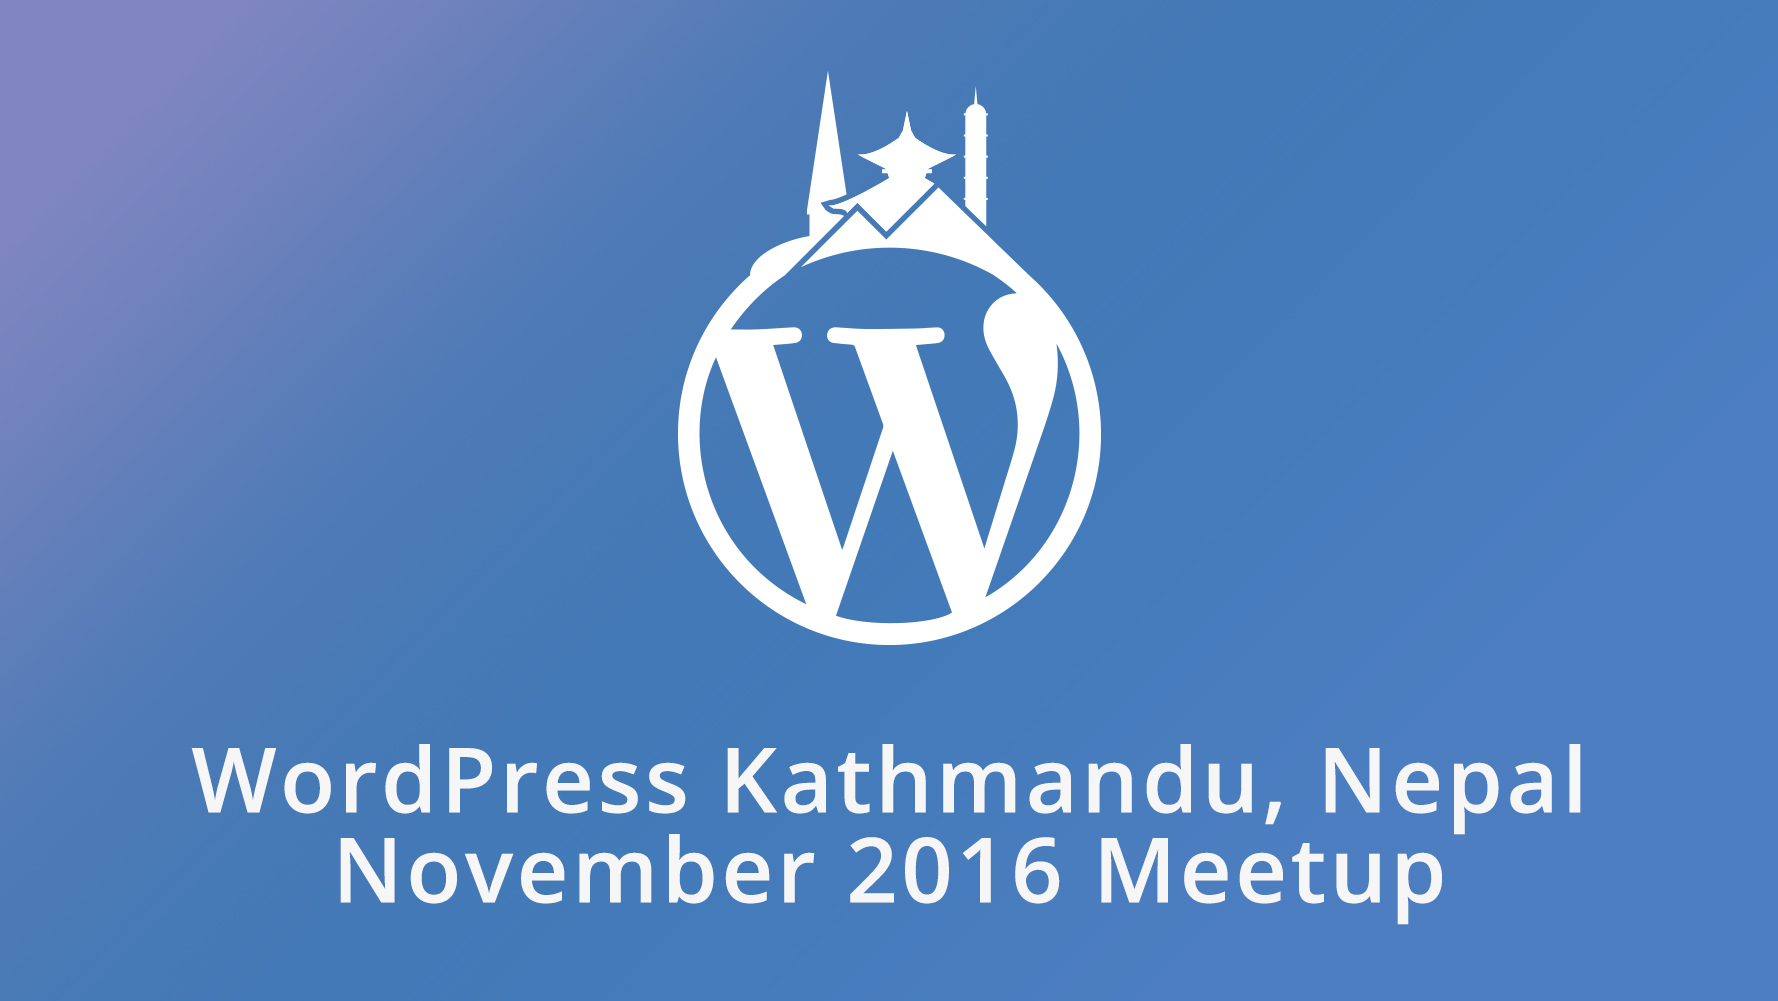 WordPress Kathmandu, Nepal November 2016 Meetup